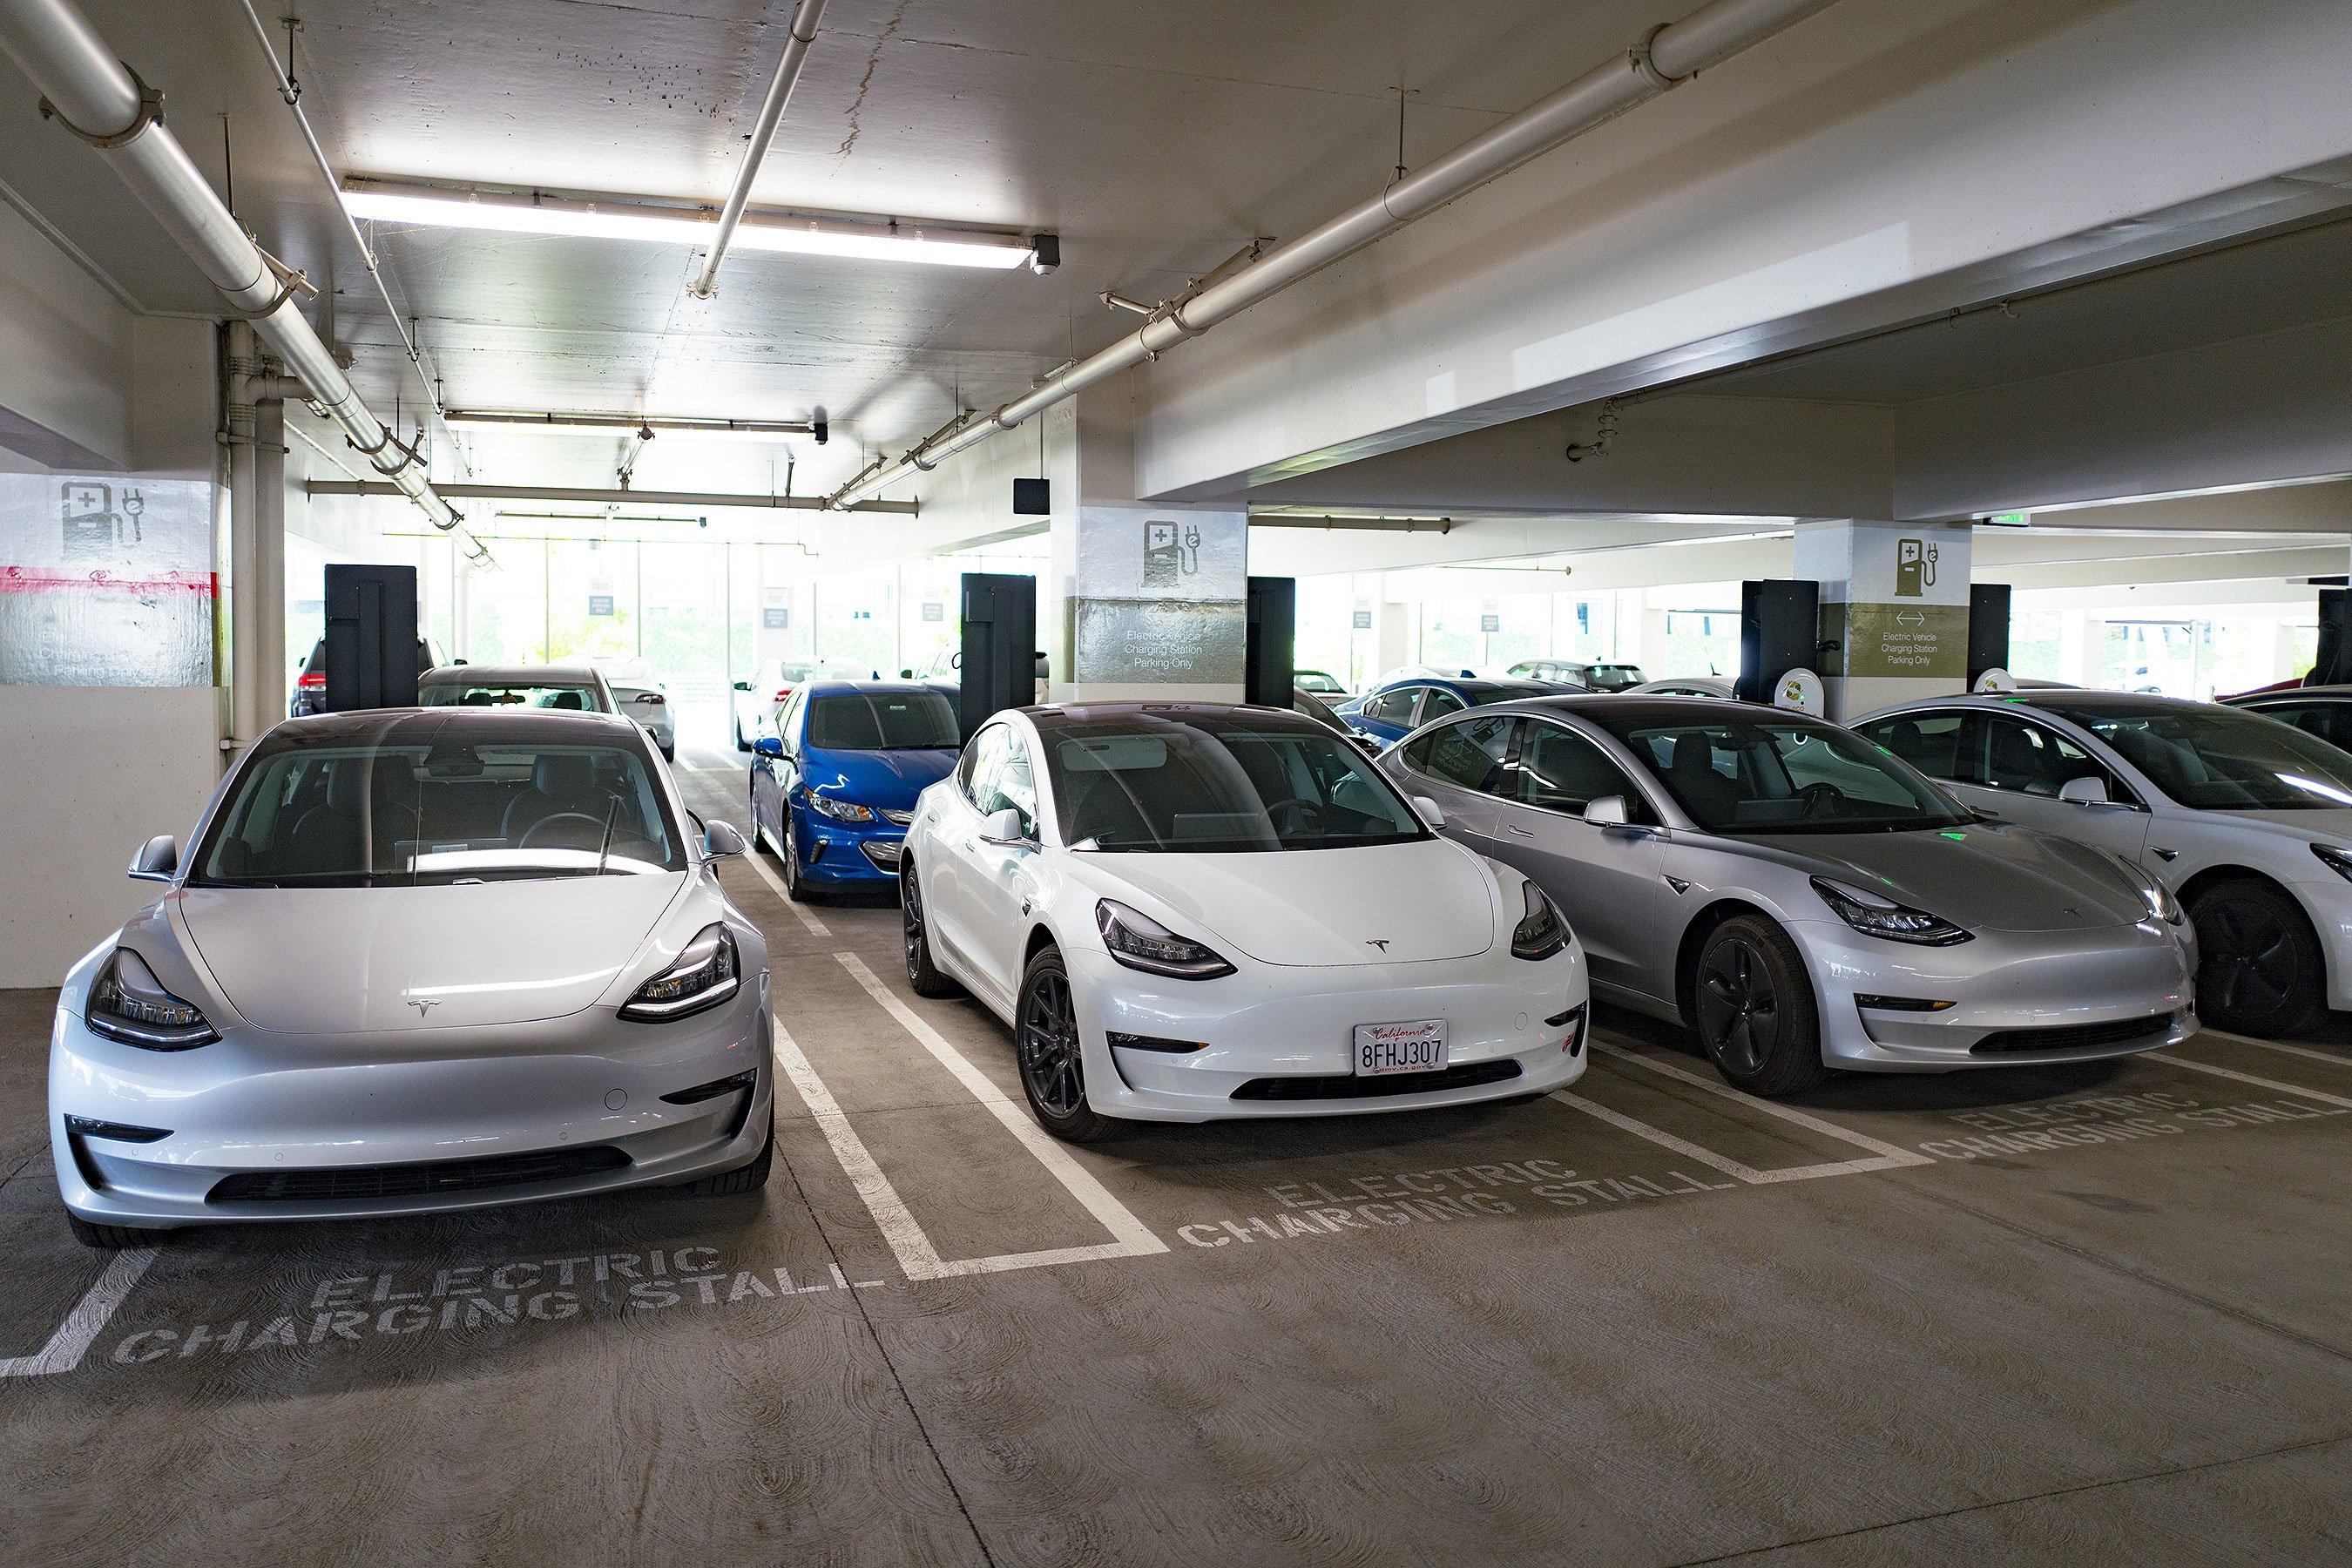 Tesla Owners Can Now 'Summon' Their Cars to Self-Drive to ...